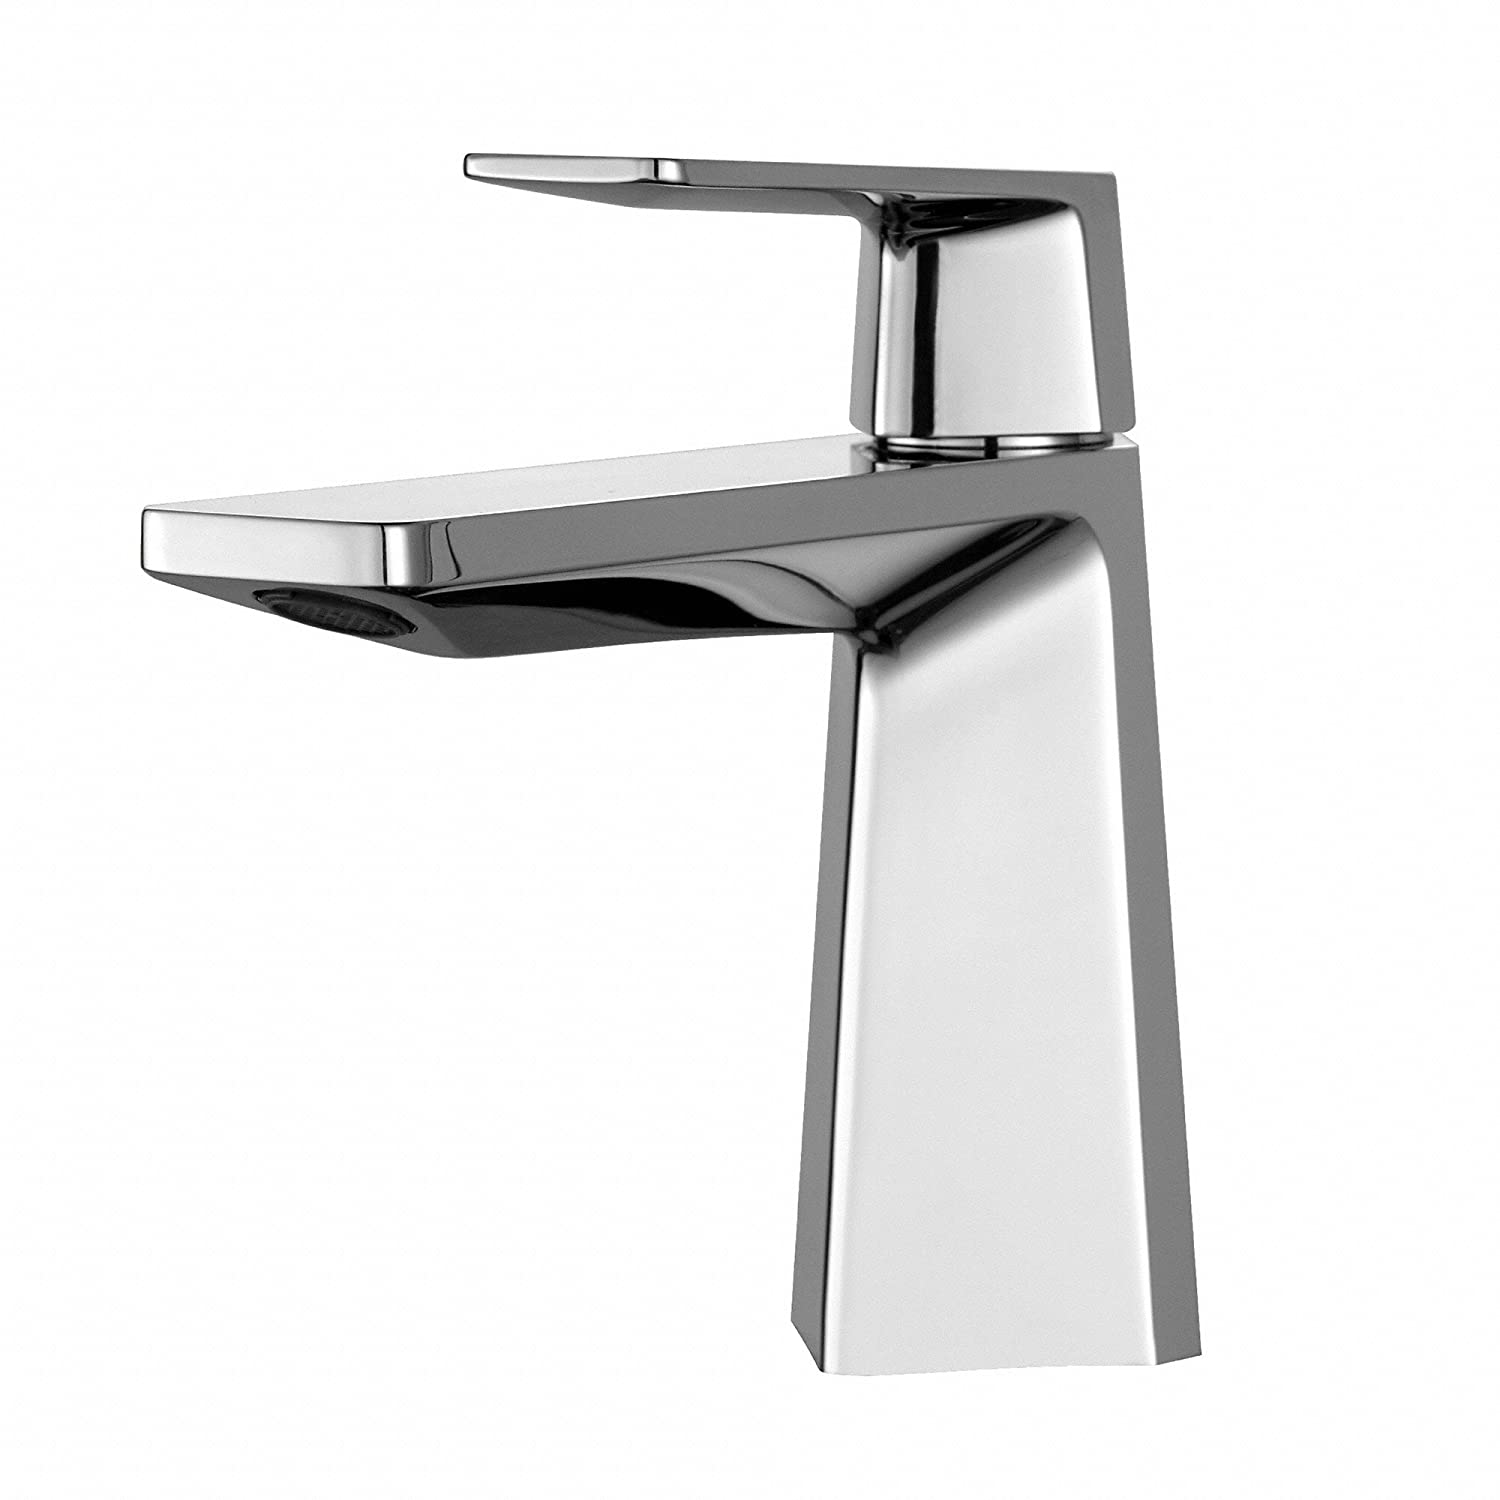 Kraus KEF-15301CH Aplos Single Lever Basin Bathroom Faucet Chrome ...